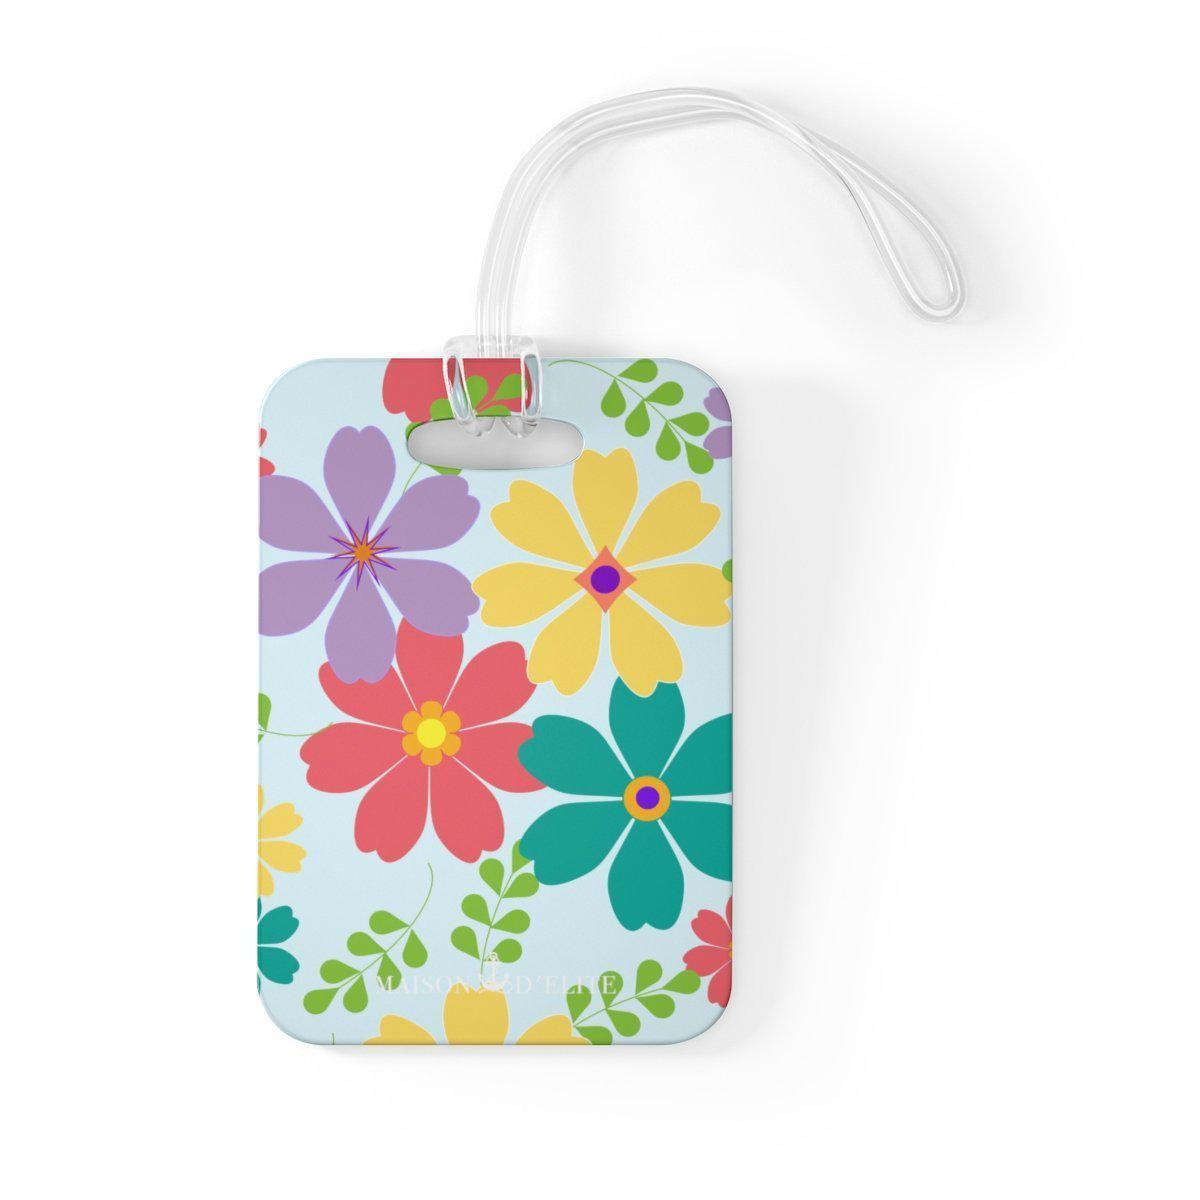 Maison d'Elite Floral Luggage Tag-Luggage & Bags › Travel Accessories › Luggage Tags-Maison d'Elite-One Size-Très Elite